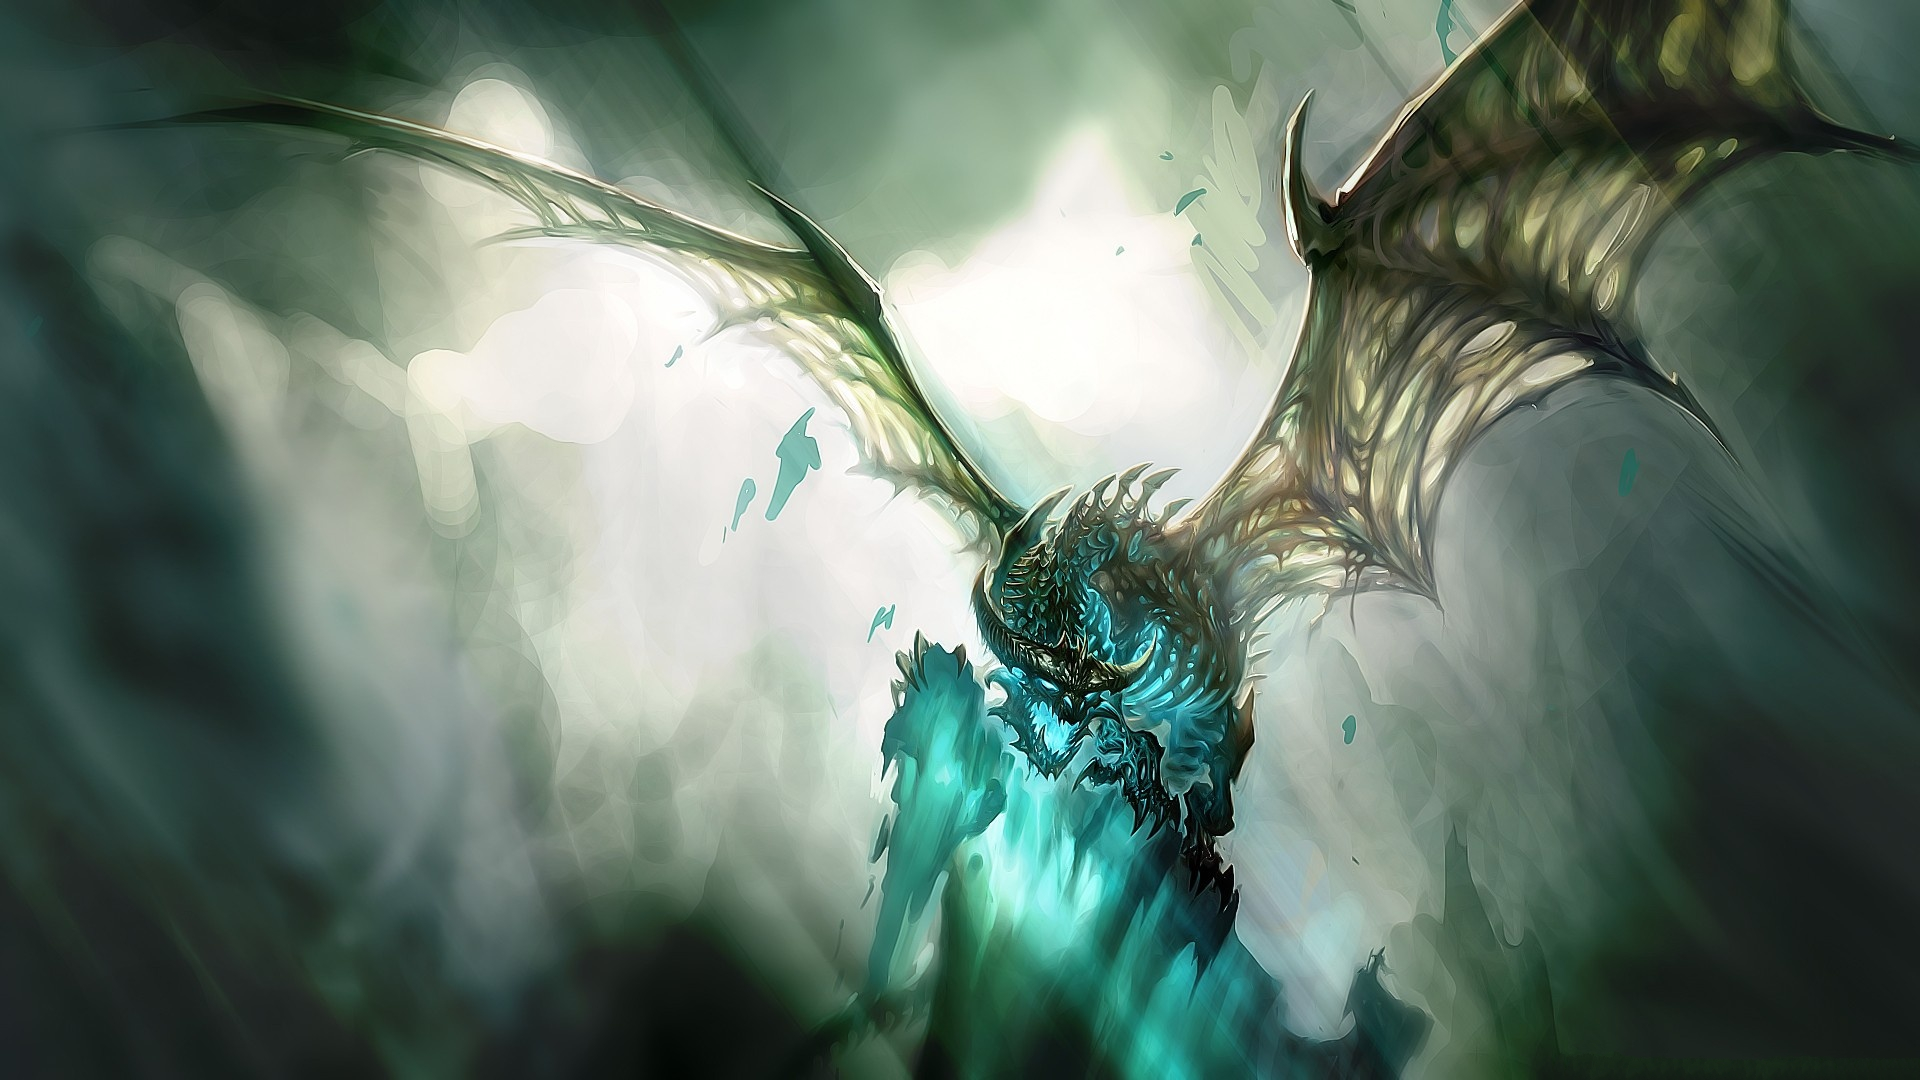 HD Ice Dragon Wallpapers 1920x1080